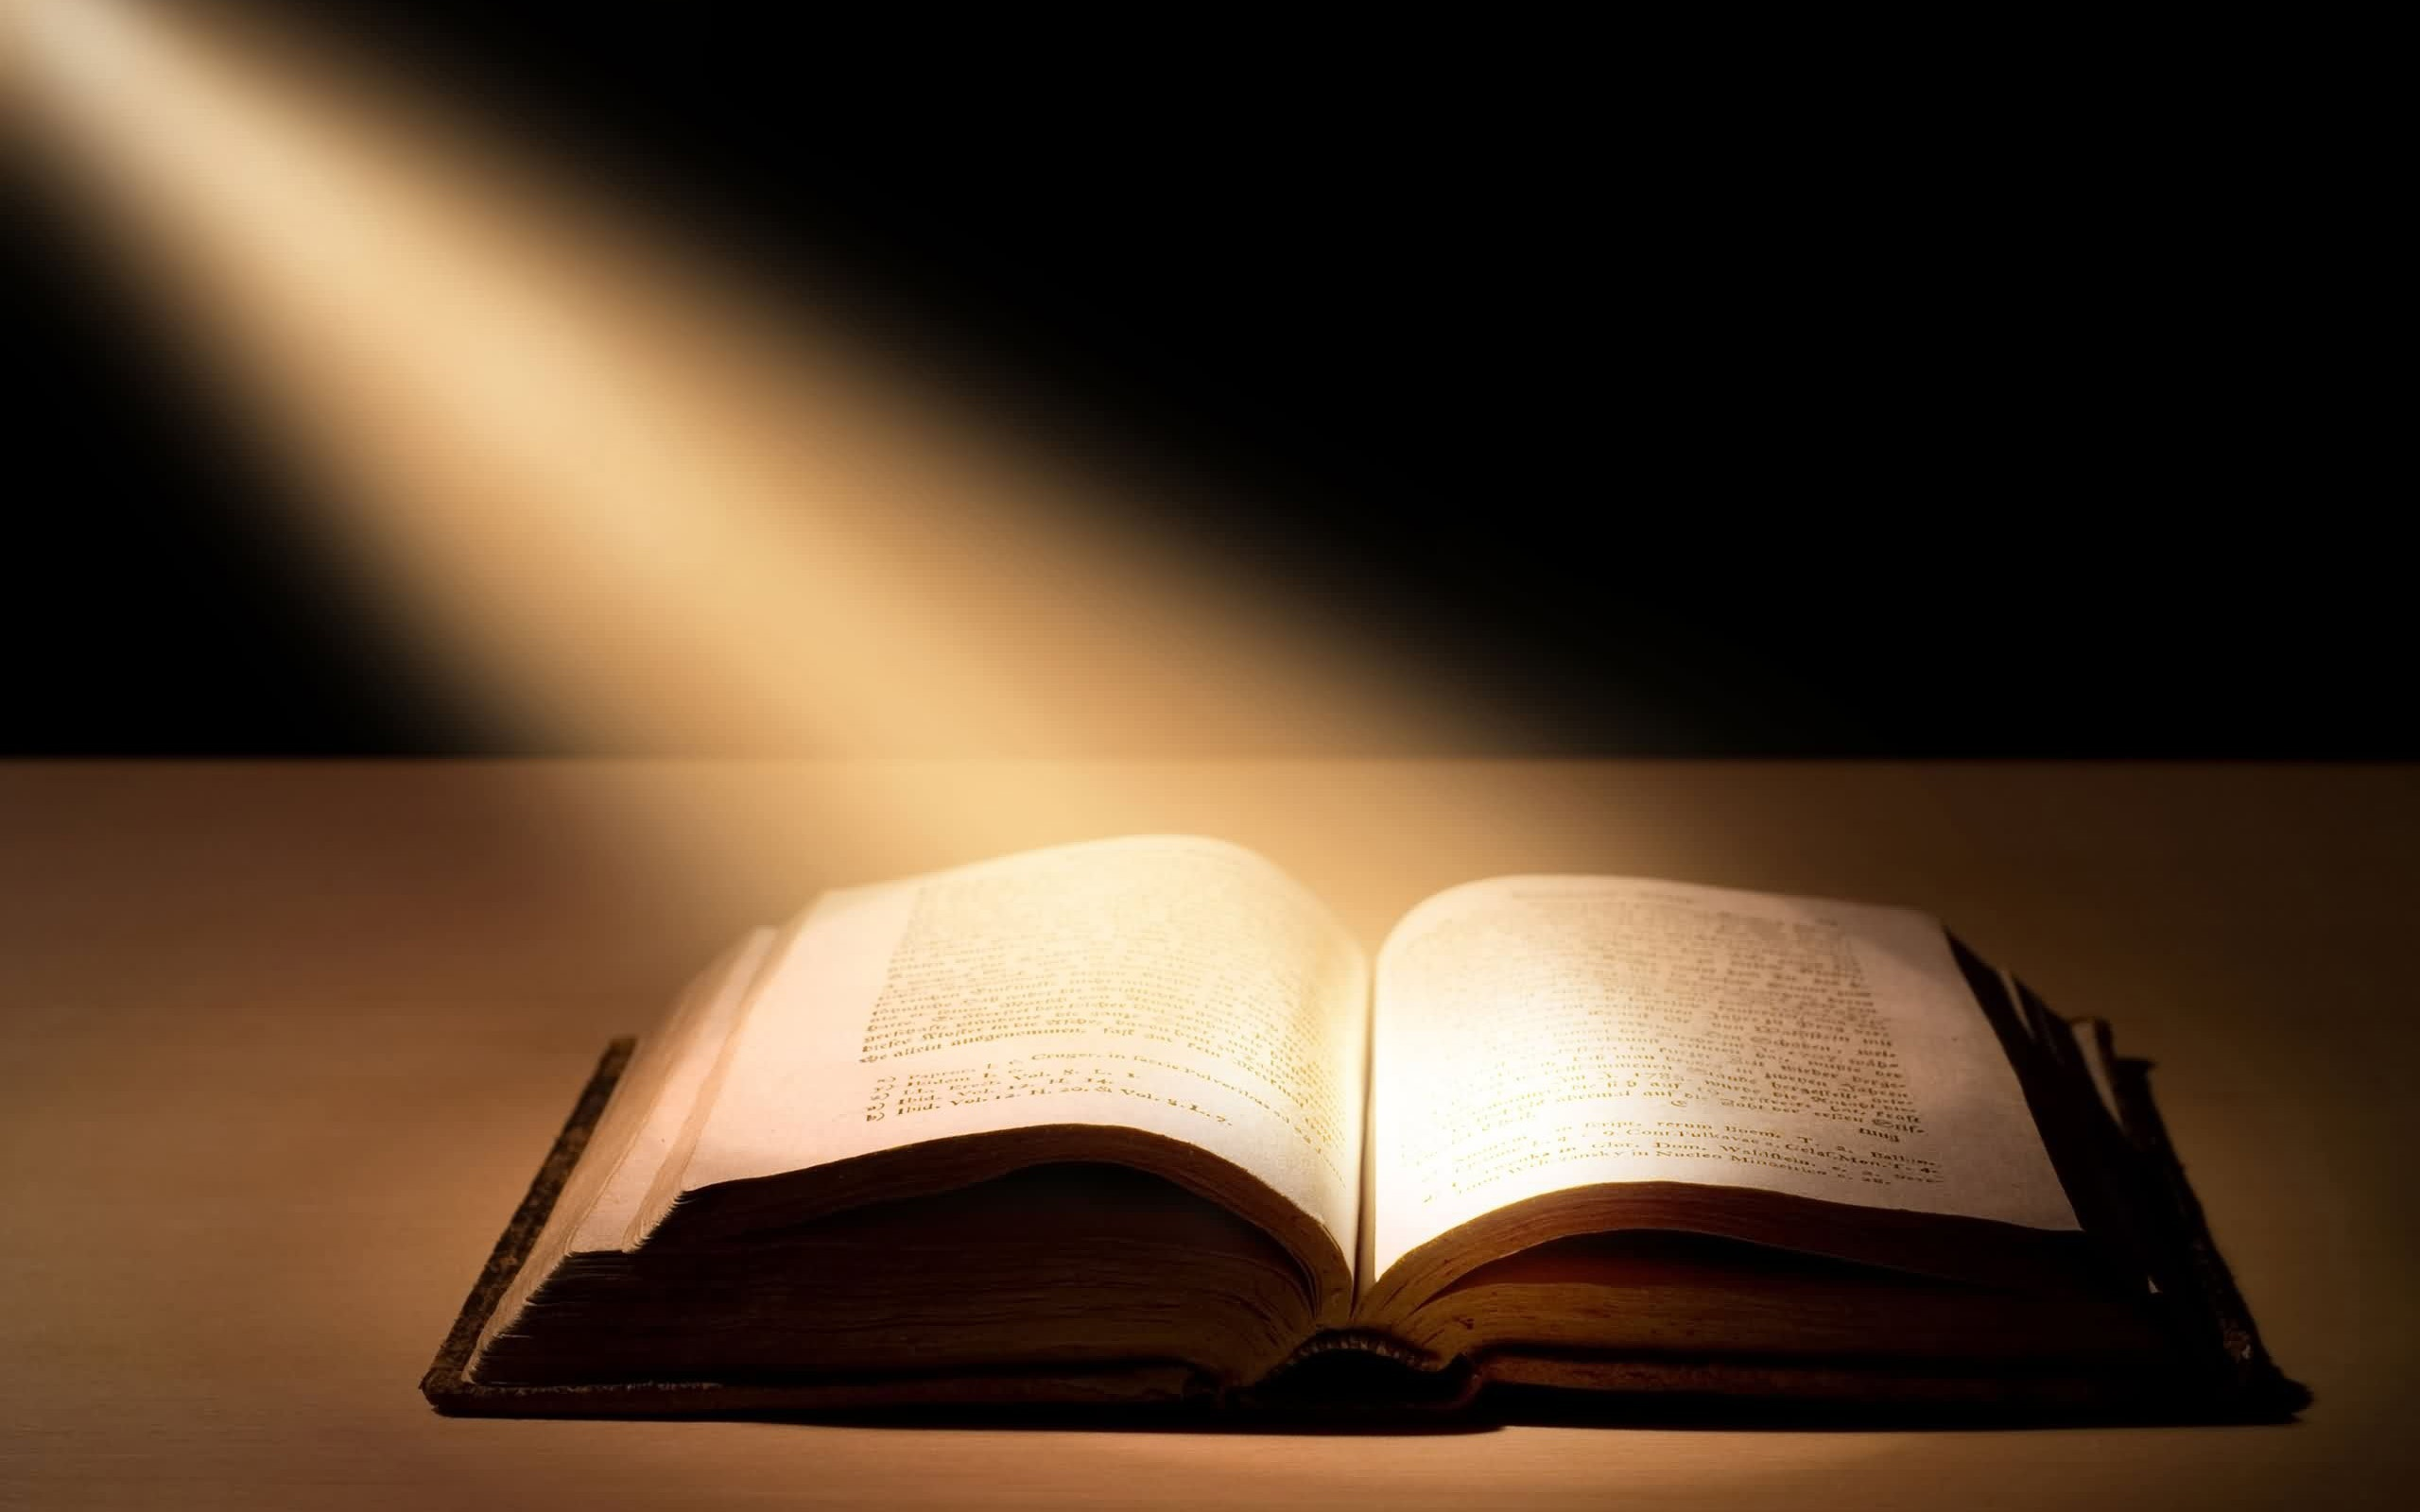 Bible in Spotlight Picture 224.07 Kb